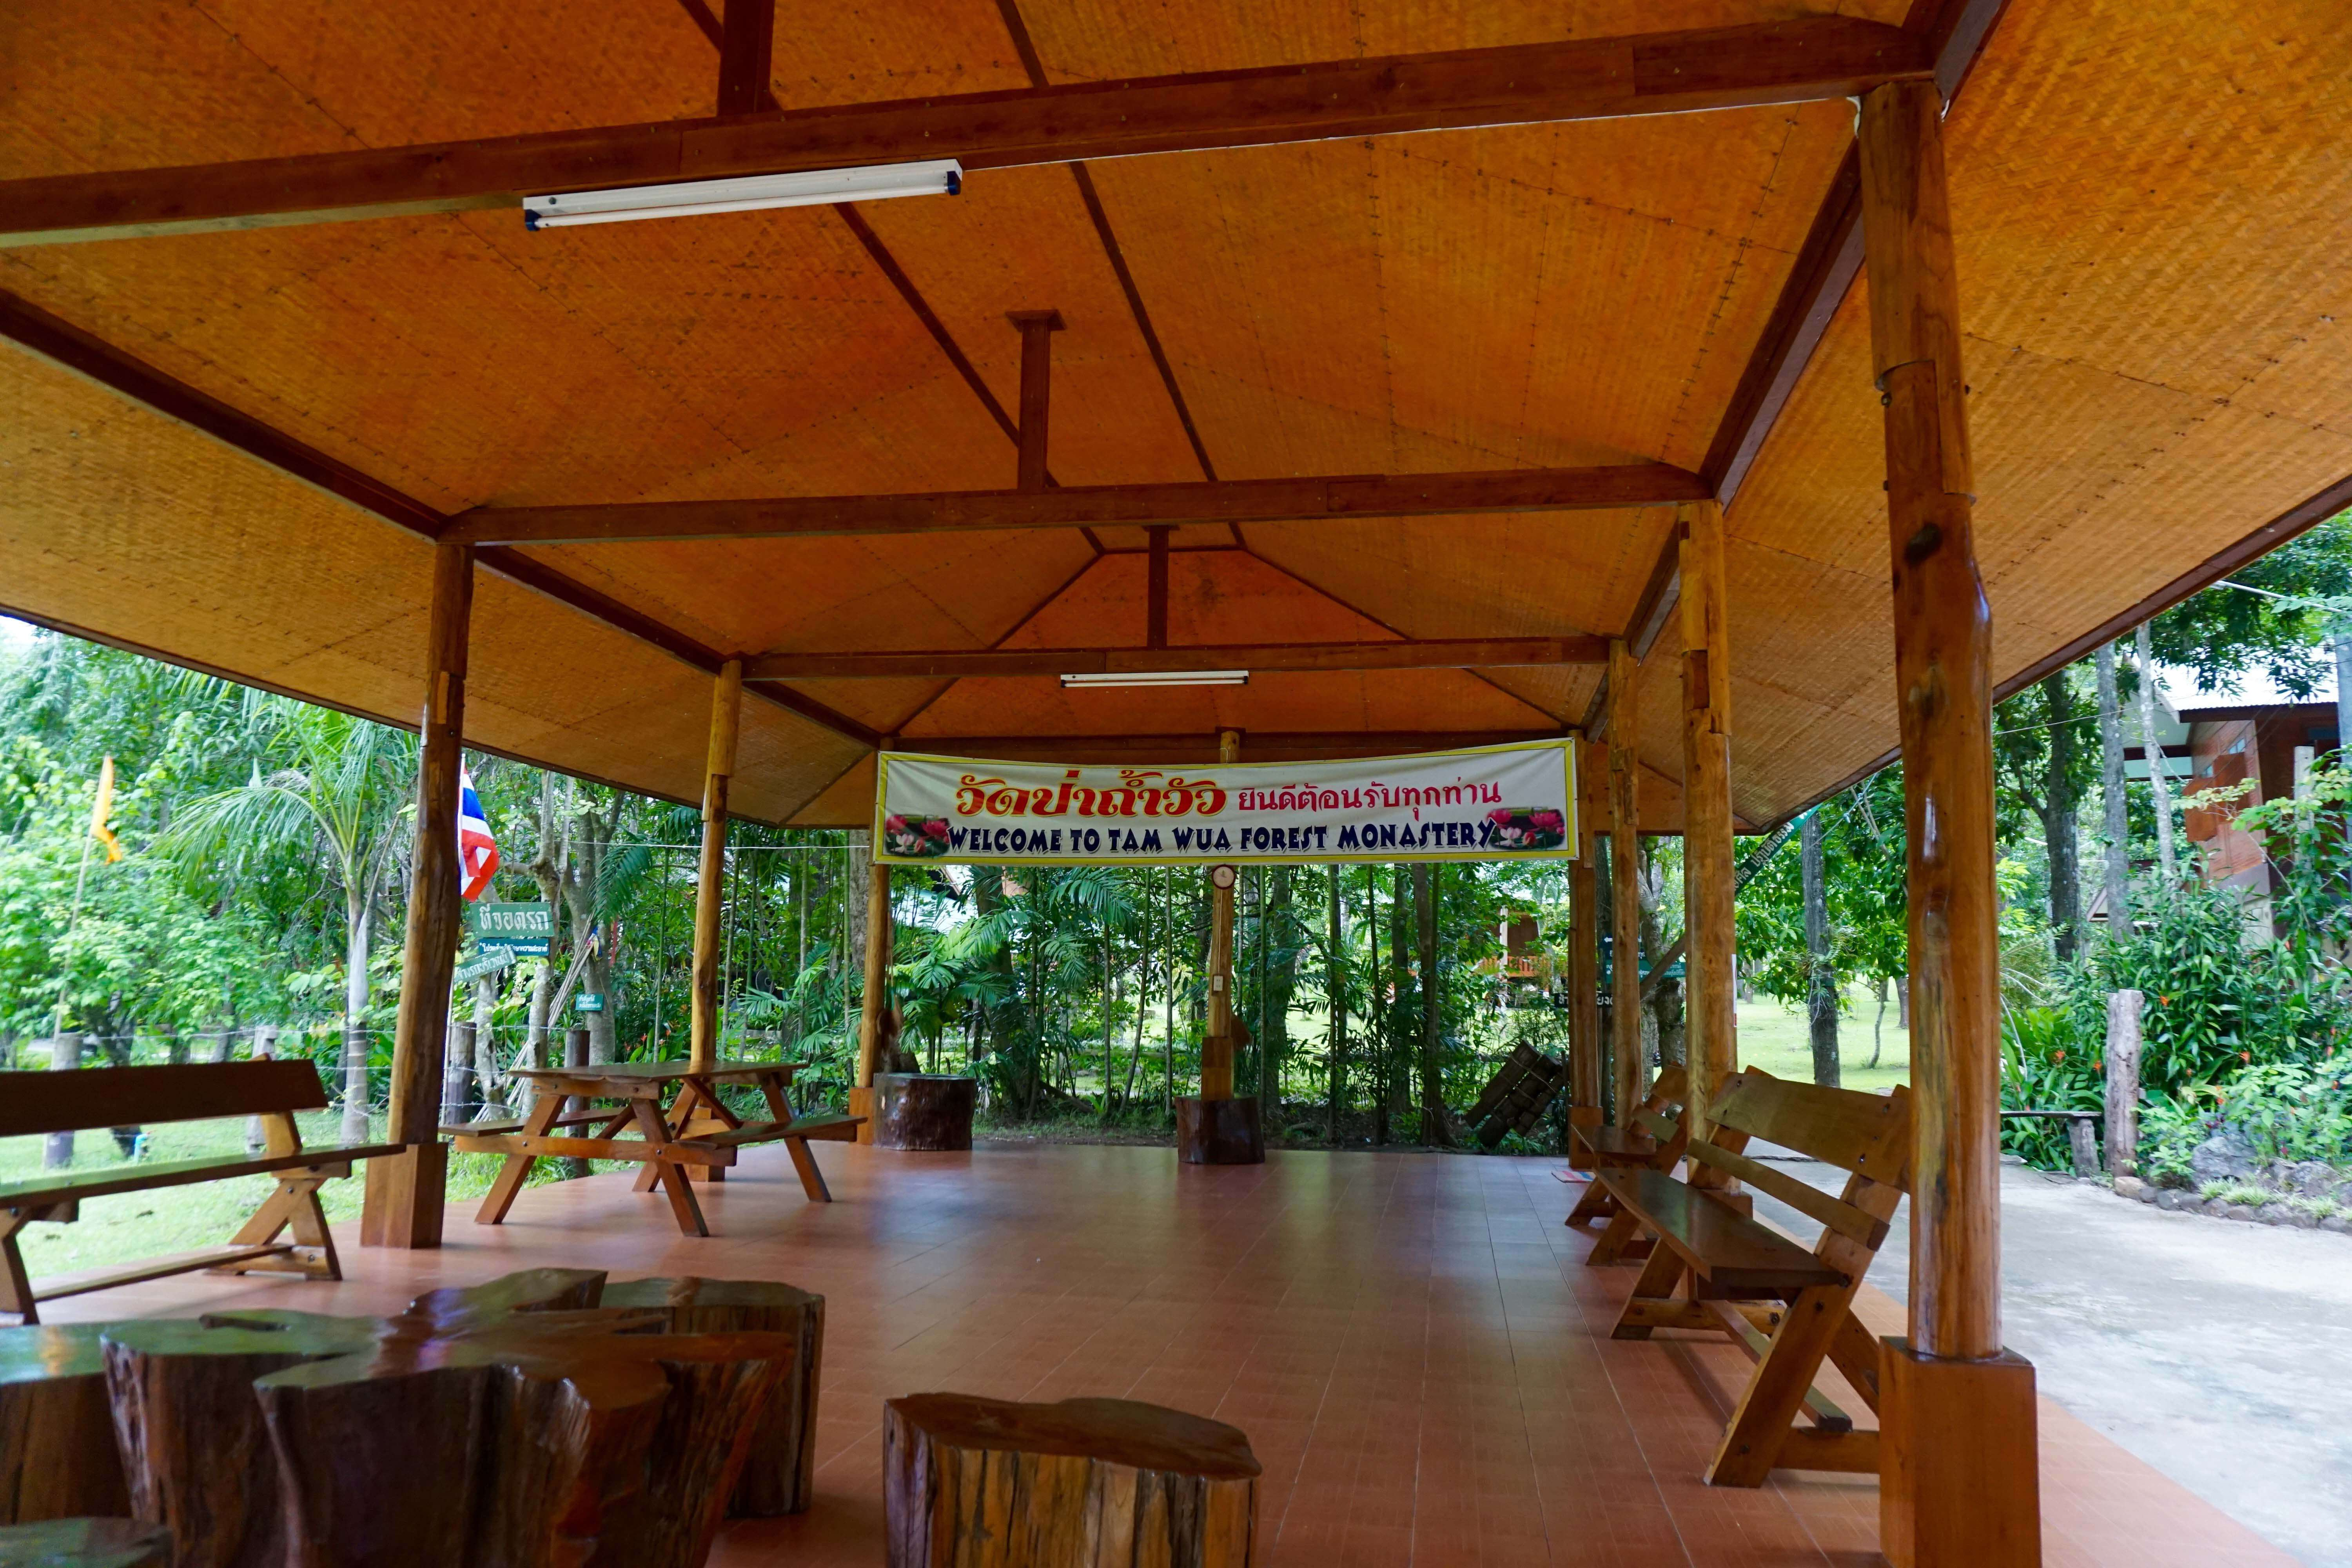 Building in the forest with wood benches and tables